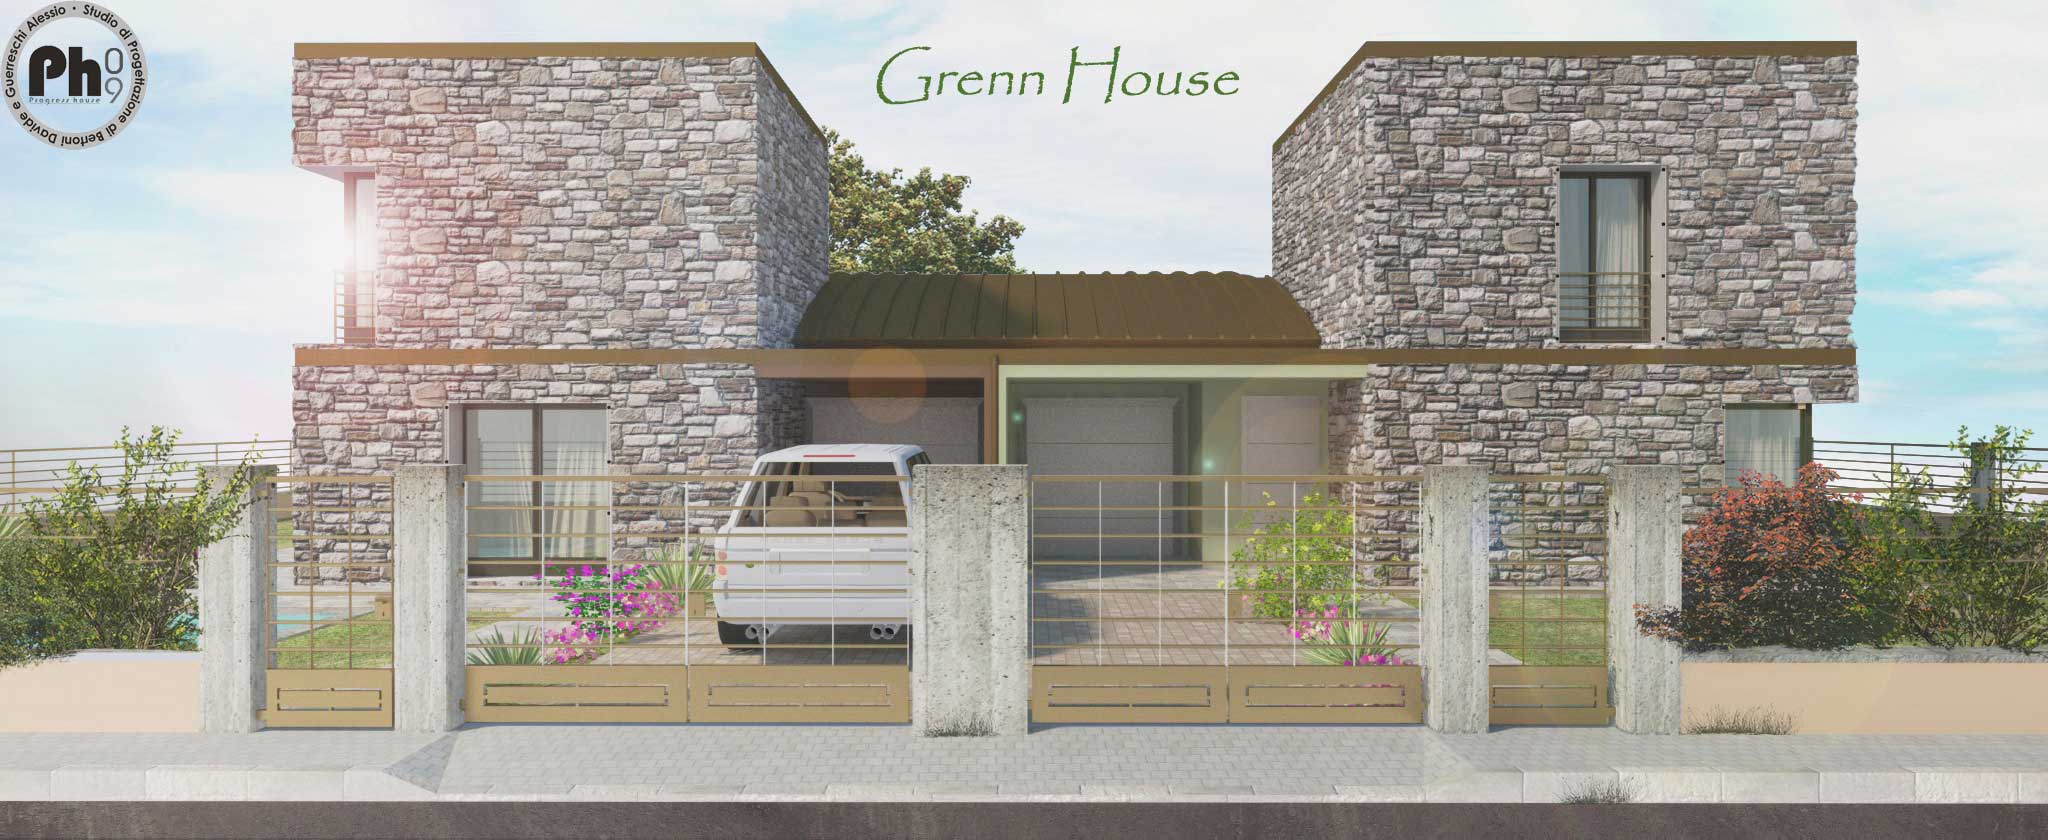 Green-House-(5)